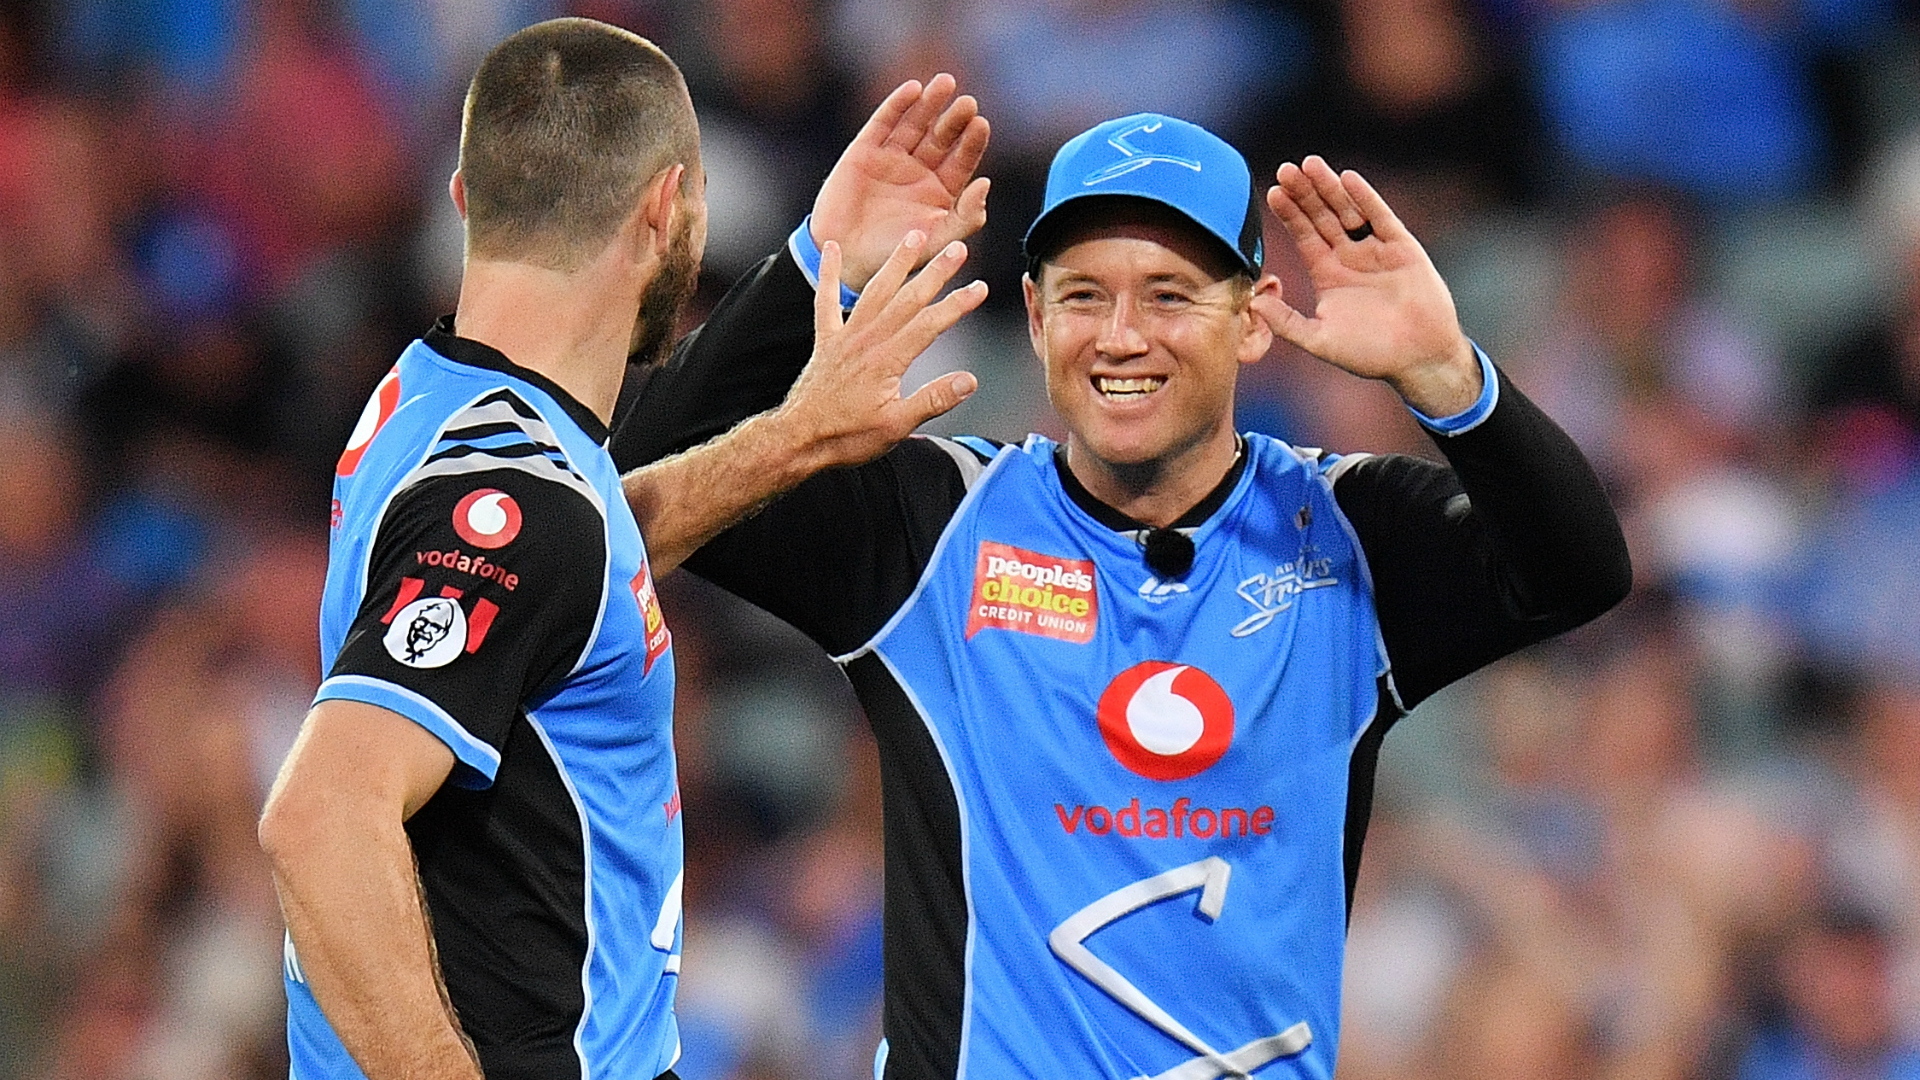 Adelaide Strikers made easy work of Melbourne Stars, the champions' third win in four putting them second in the BBL ladder.